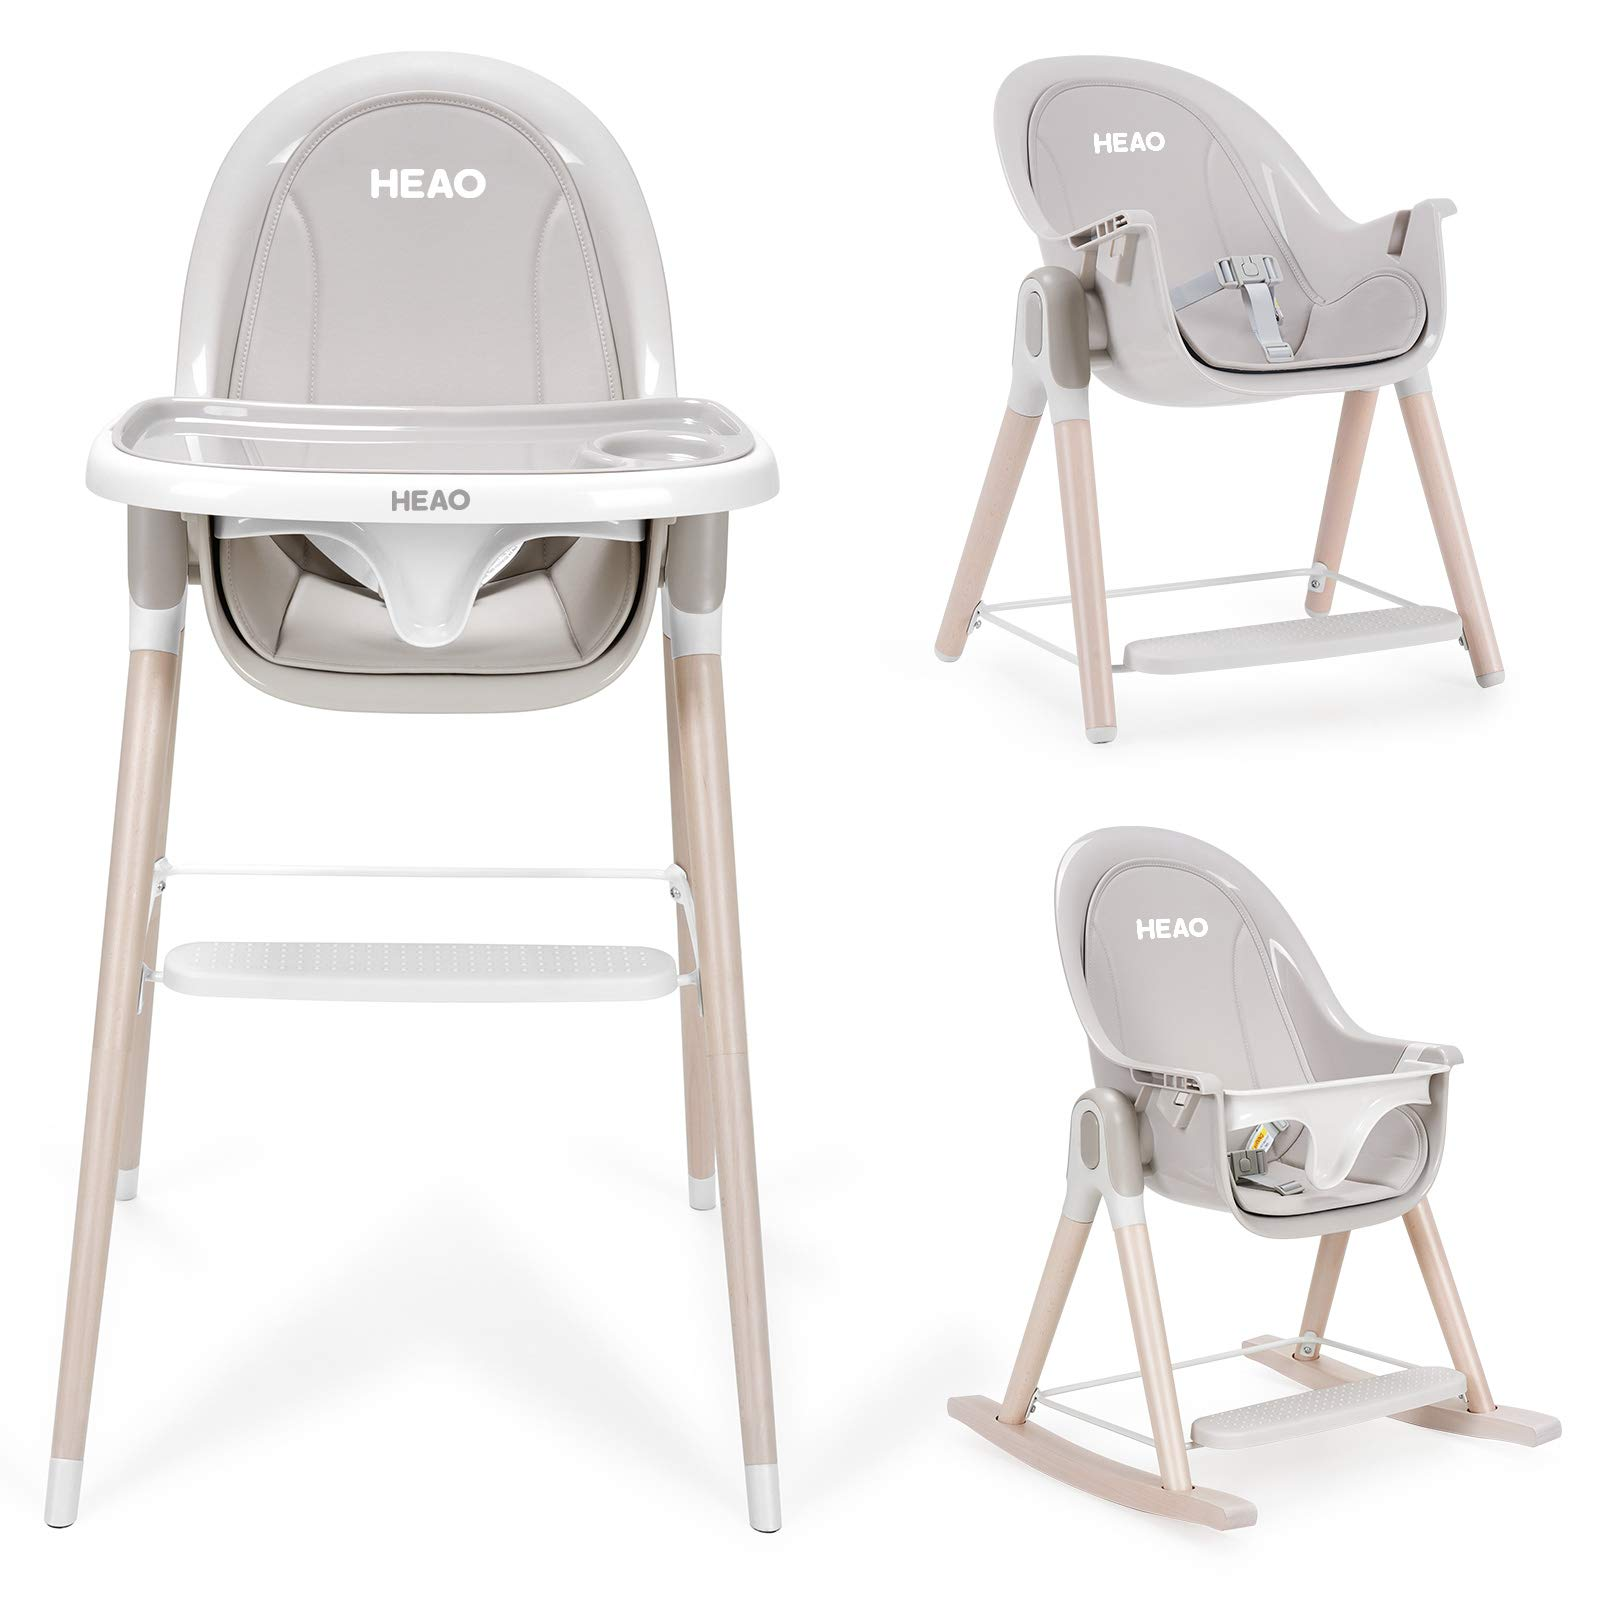 HEAO 4 in 1 Baby High Chair, Convertible Reclining High Chair/Wooden Rocking Chair/Booster Seat/Toddler Chair & Table, w/ Double Removable Tray & PU Cushions for Baby/Infants/Toddlers,Gray